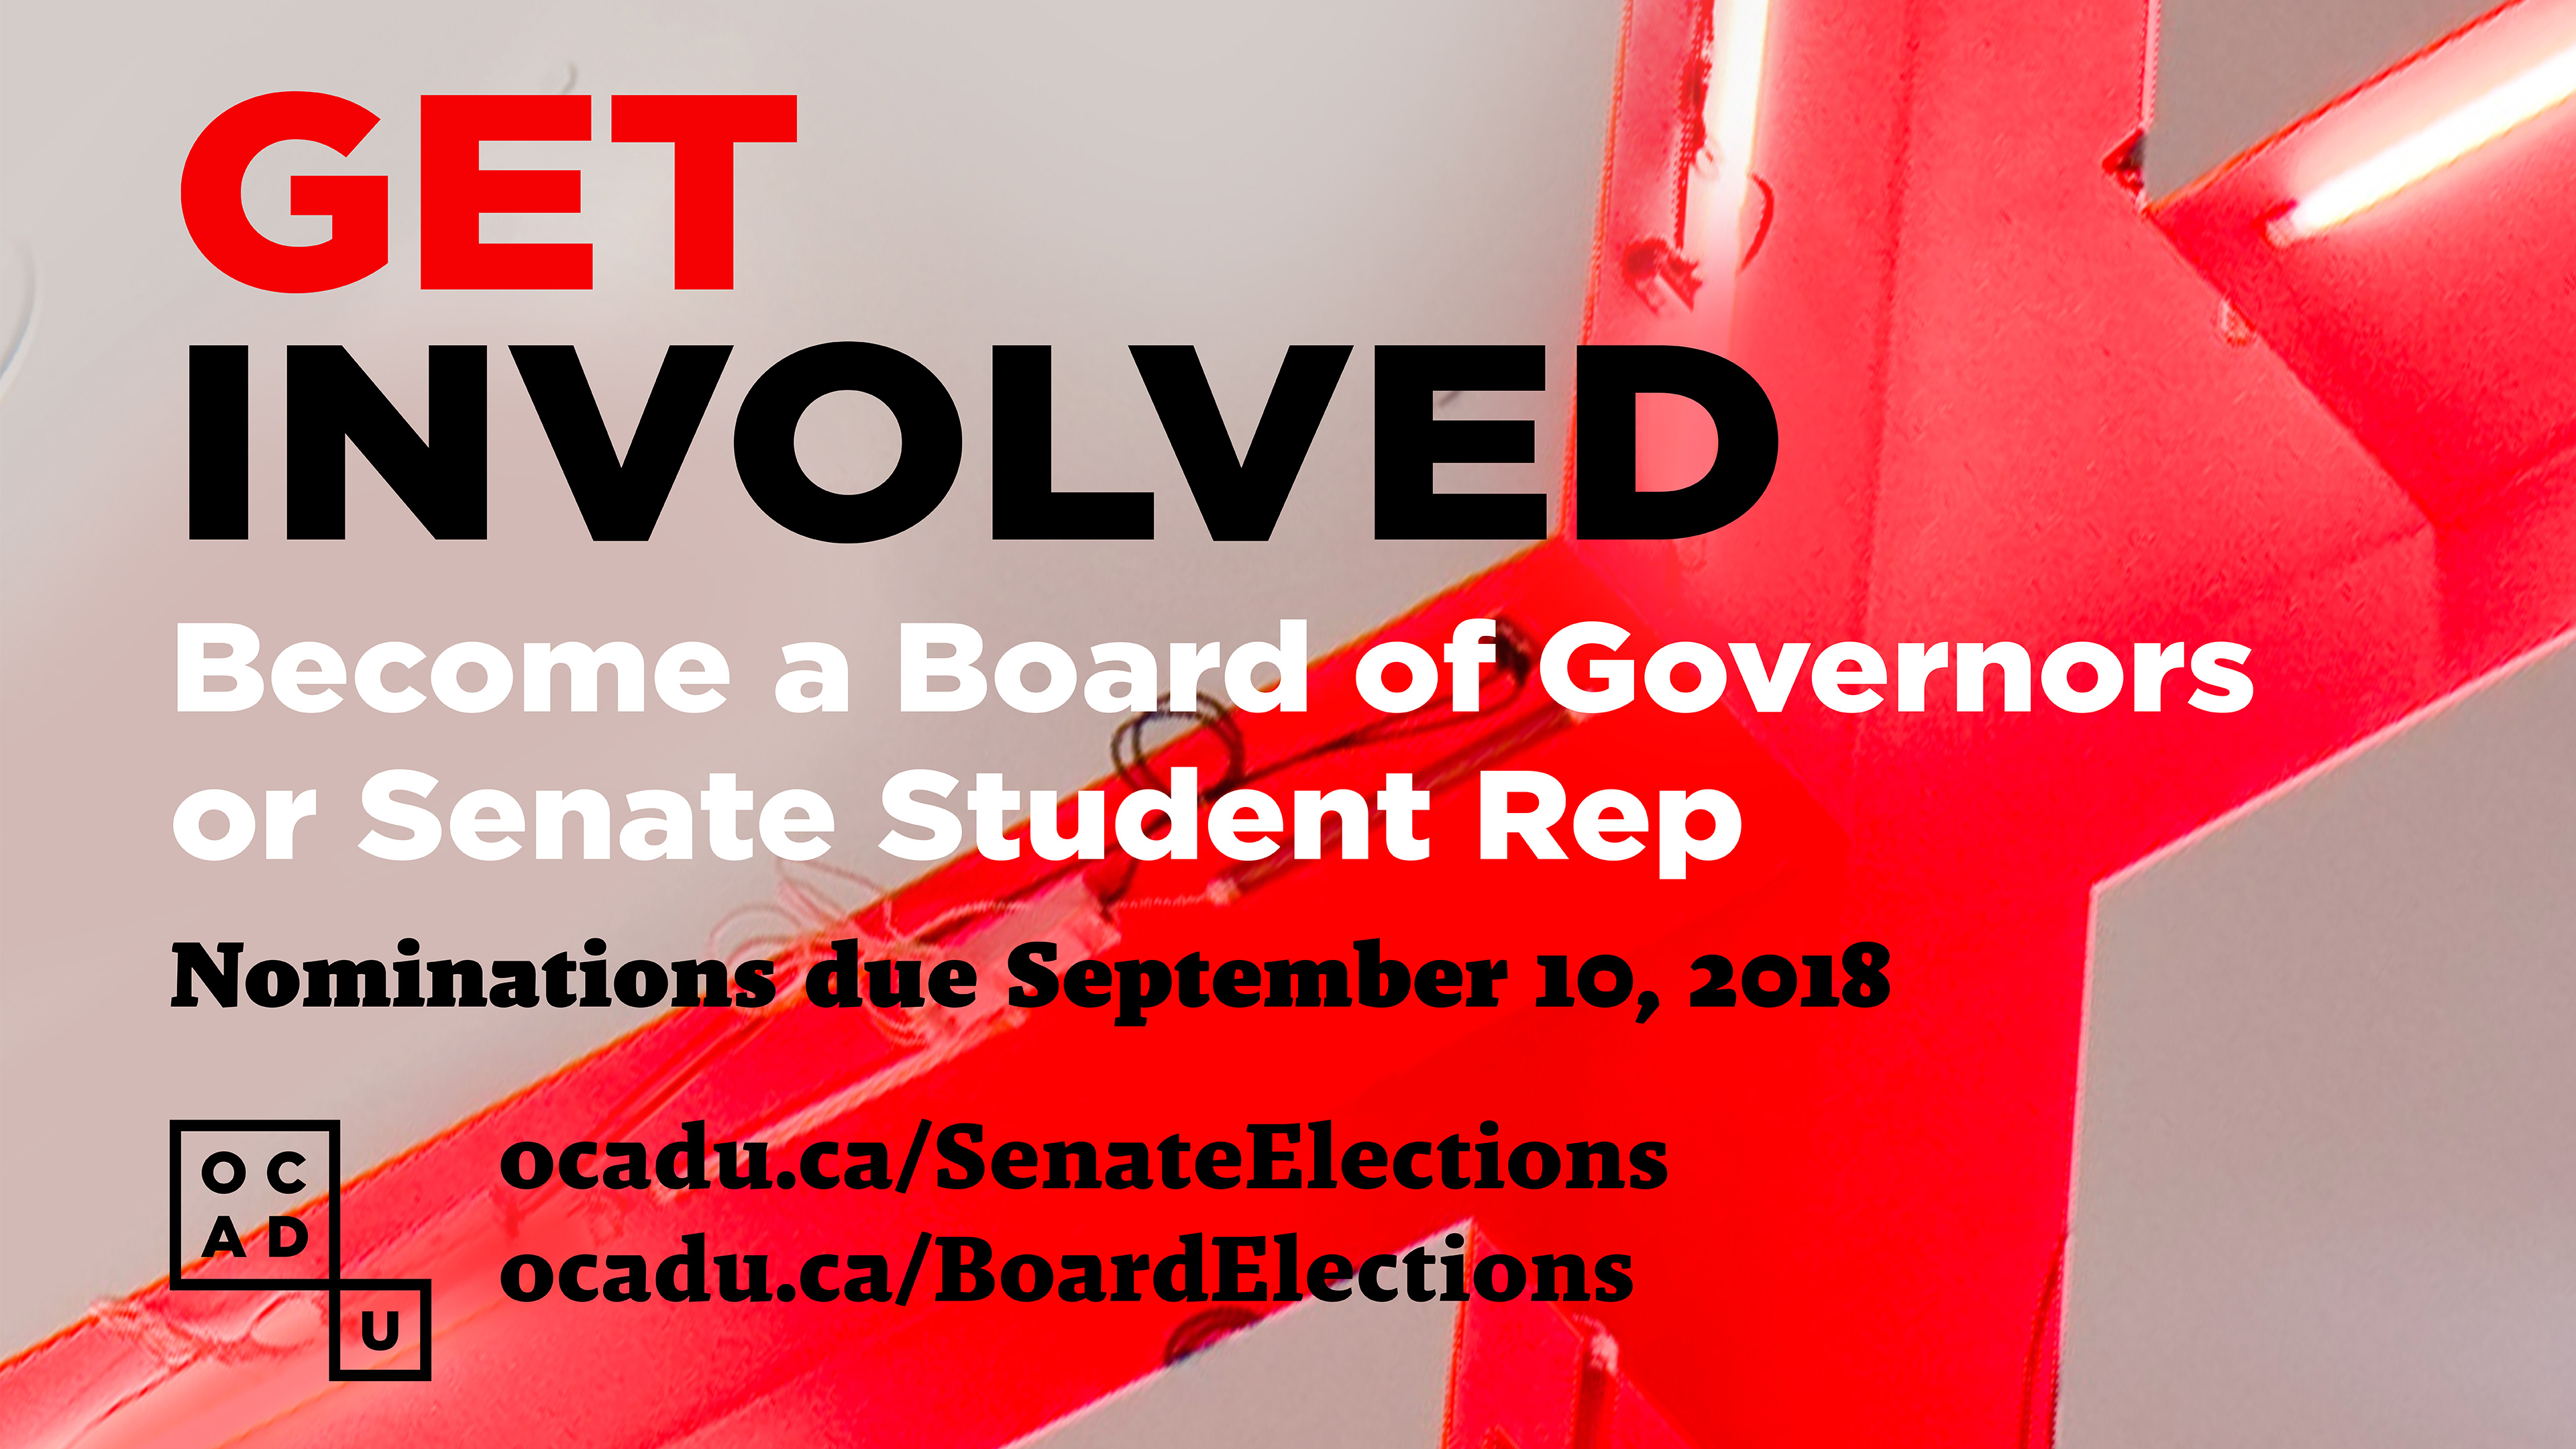 Get Involved: Become a Board of Governors or Senate Student Rep